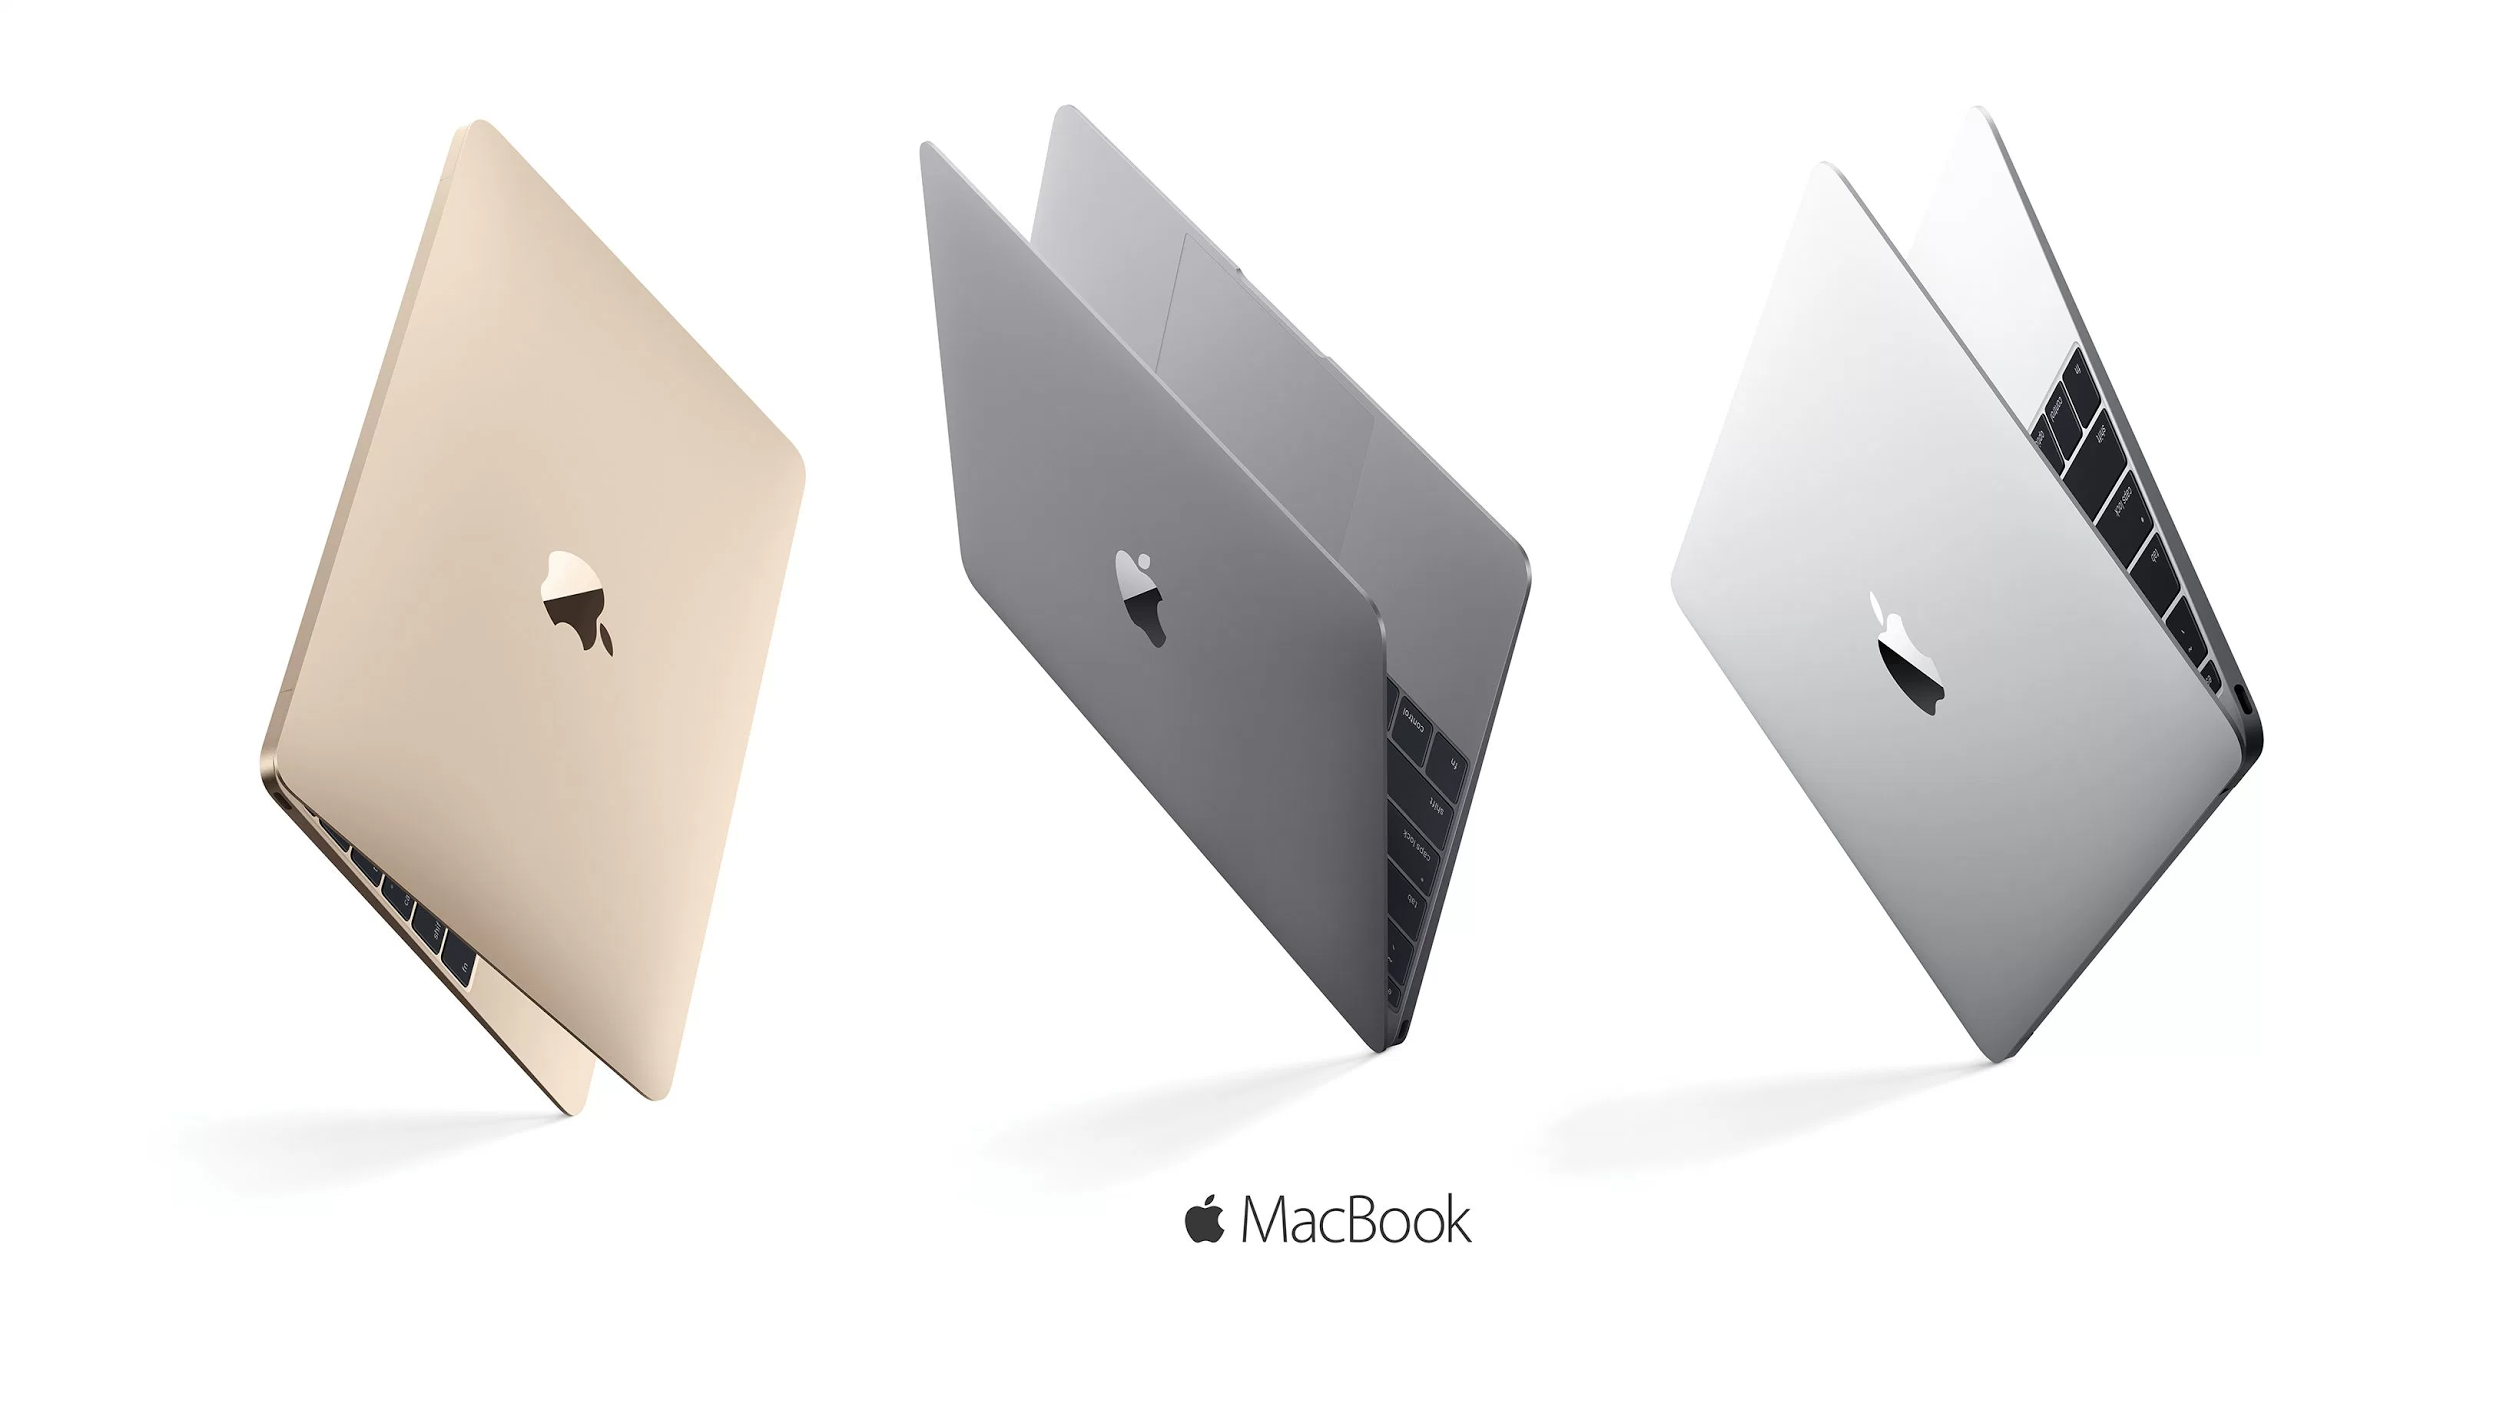 MacBook Pro from Apple minimalist design